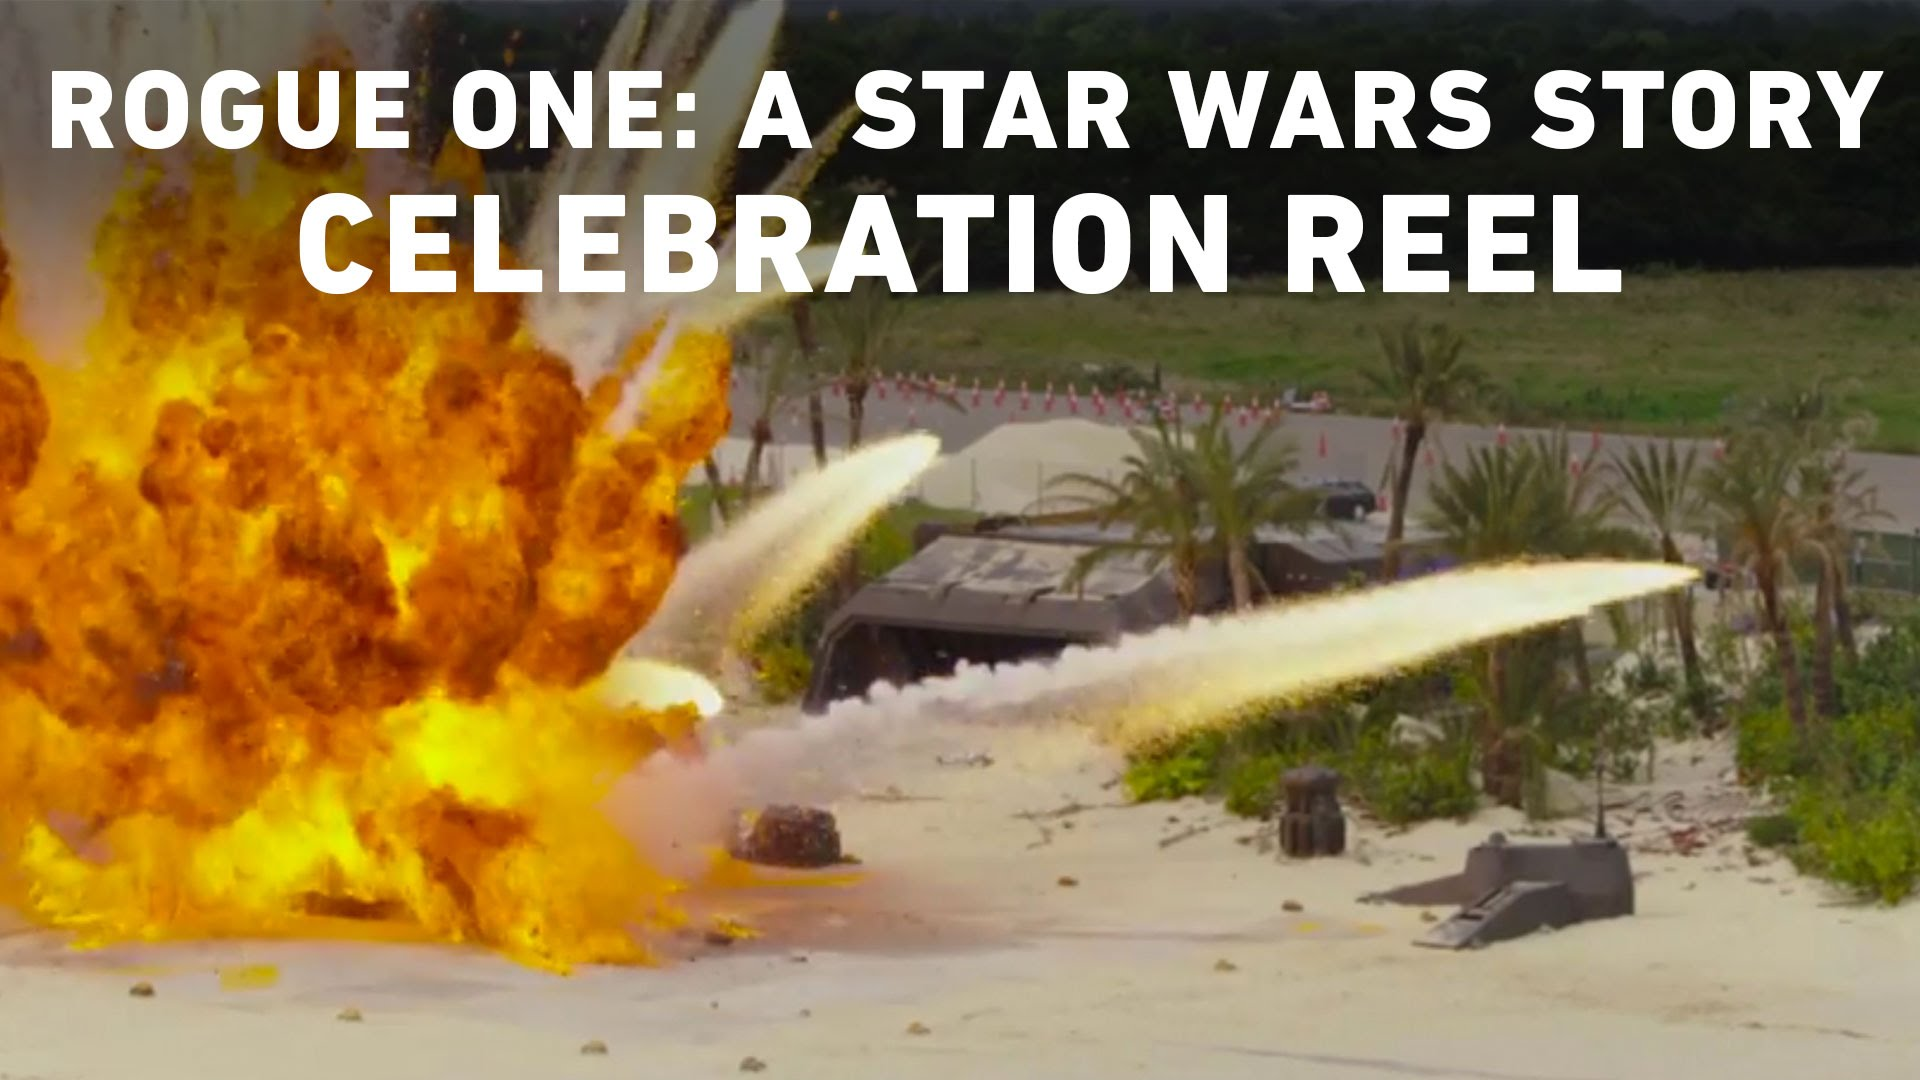 Rogue One: A Star Wars Story – Celebration Reel